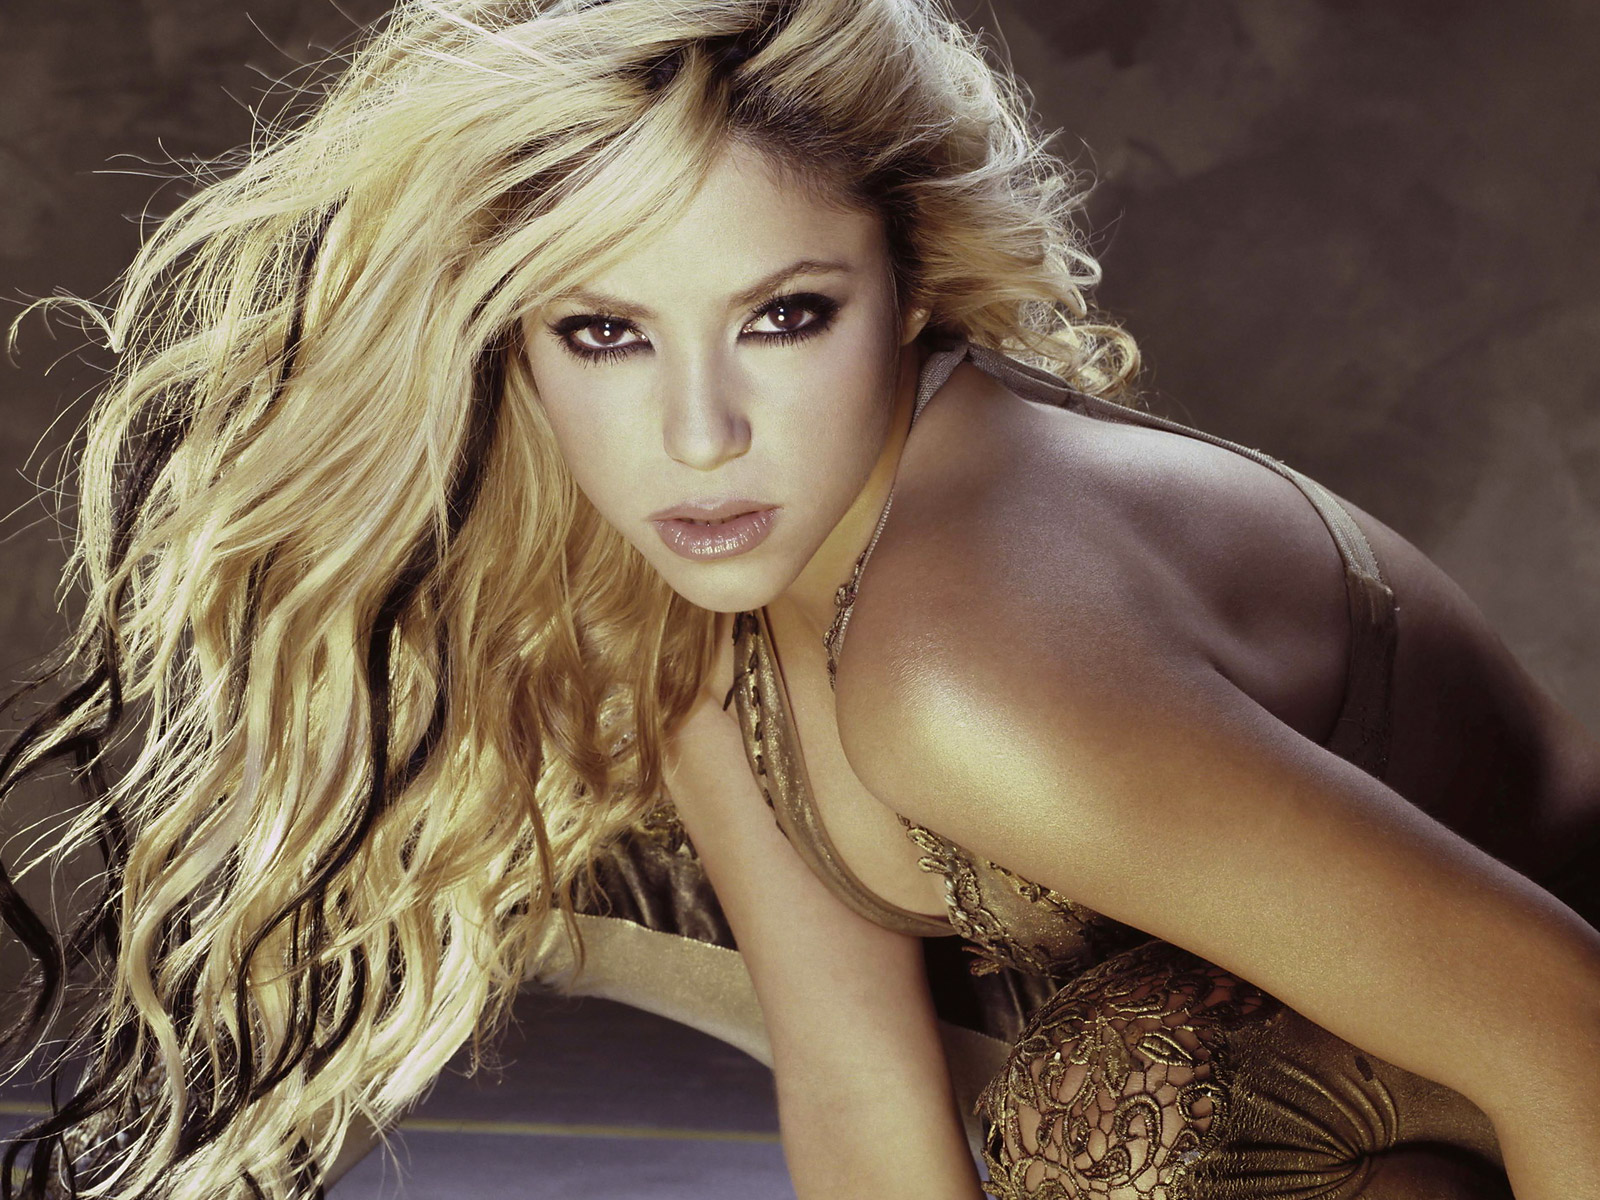 http://4.bp.blogspot.com/-GX-61Lv94gk/UGQmknk7JxI/AAAAAAAACpk/NBOTTLym8gs/s1600/The-best-top-shakira-desktop-wallpapers-9.jpg